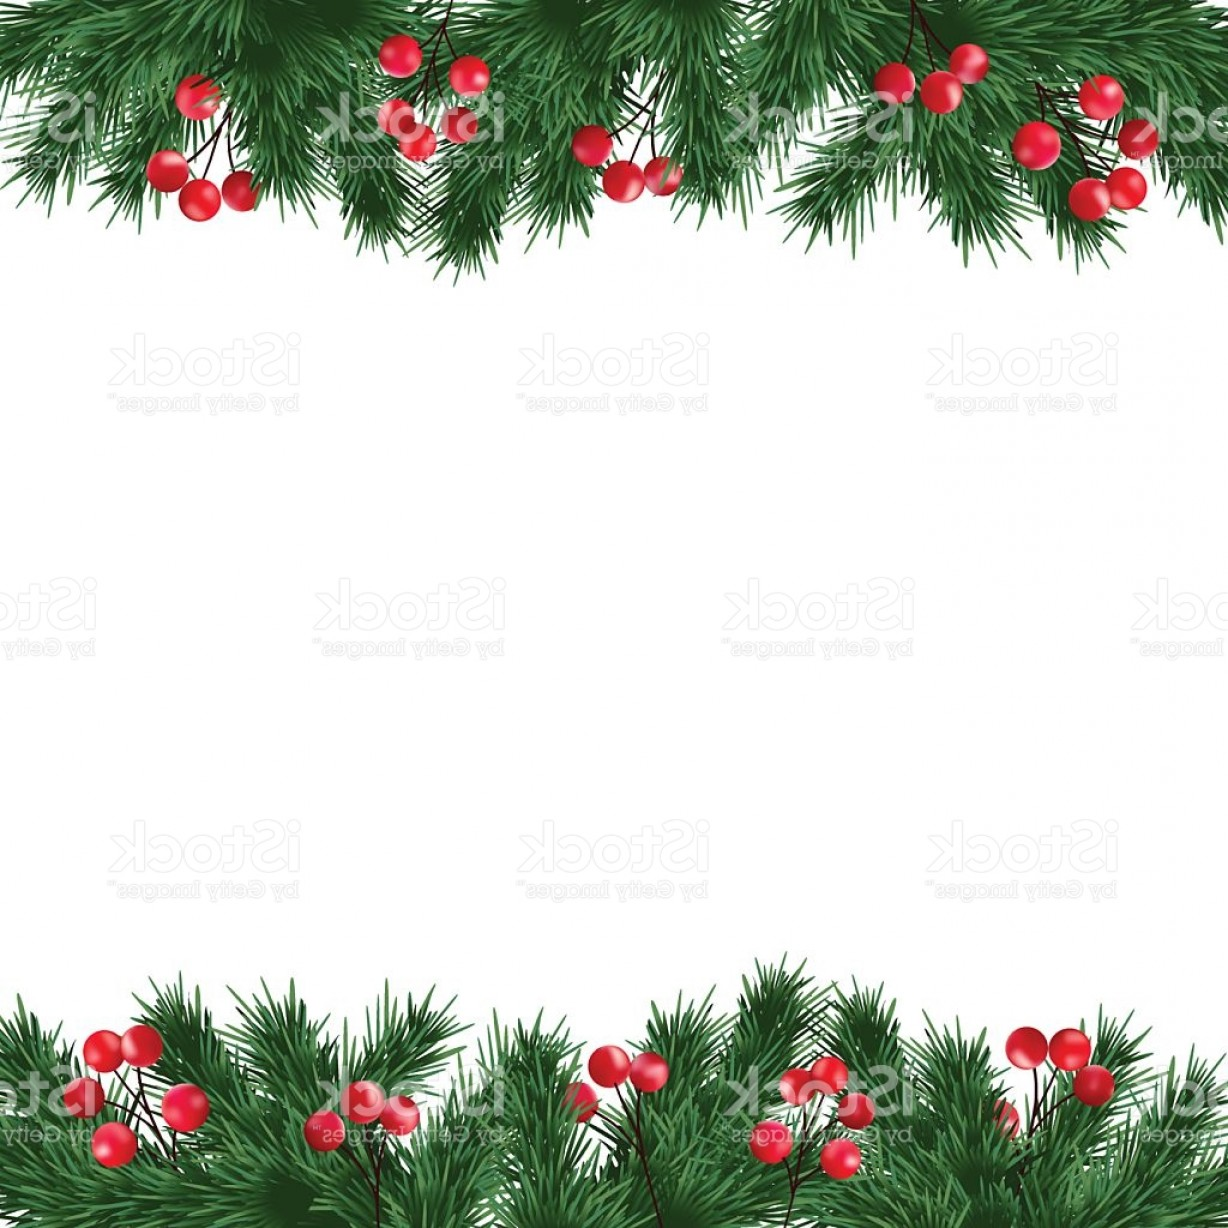 Holly Berry Vector Border: Christmas Greeting Card Fir Tree Branches And Holly Berries Border Gm